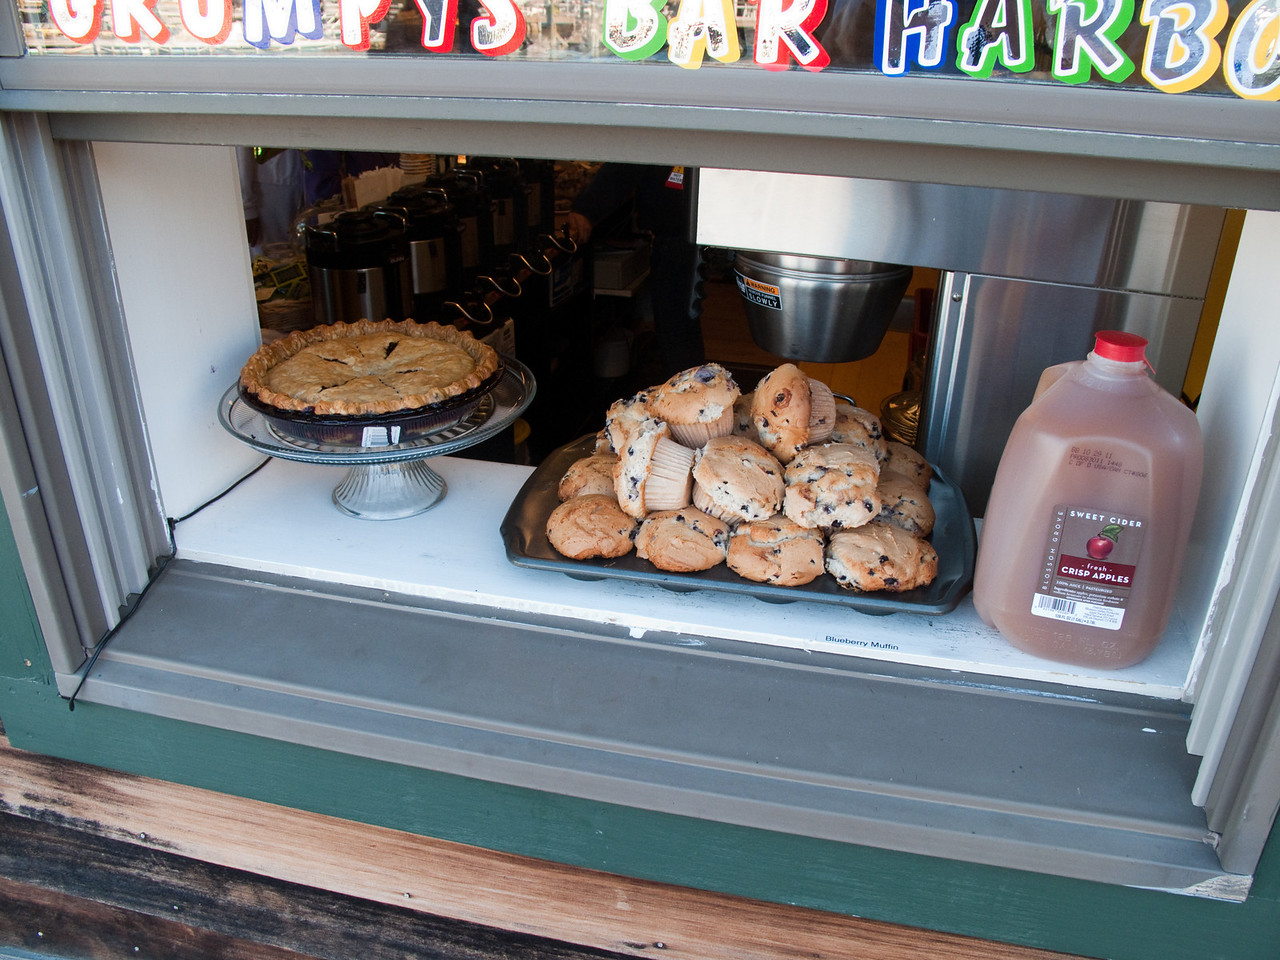 Open window on fresh cooked blueberry pie and blueberry muffins in Bar Harbor